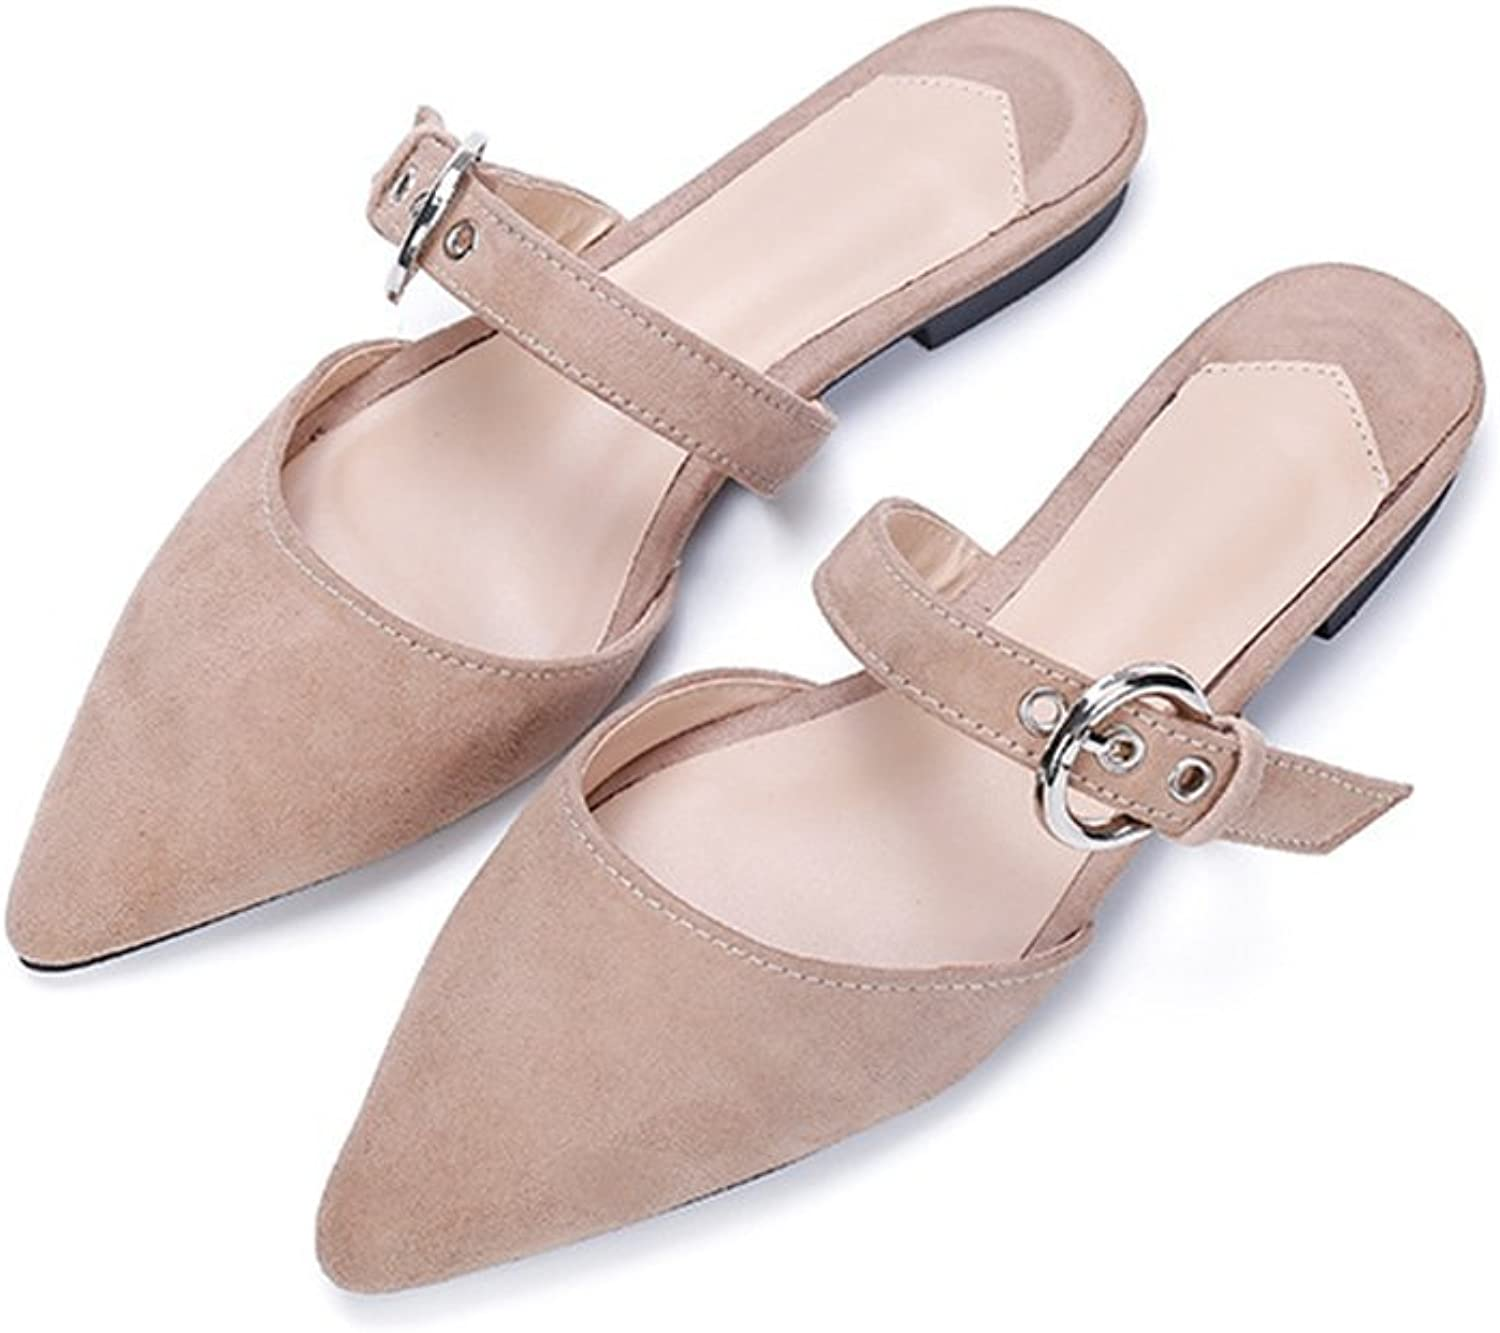 Mule Slides,Pointed Toe Slipper shoes Bow On Me Pointed Toe Flat